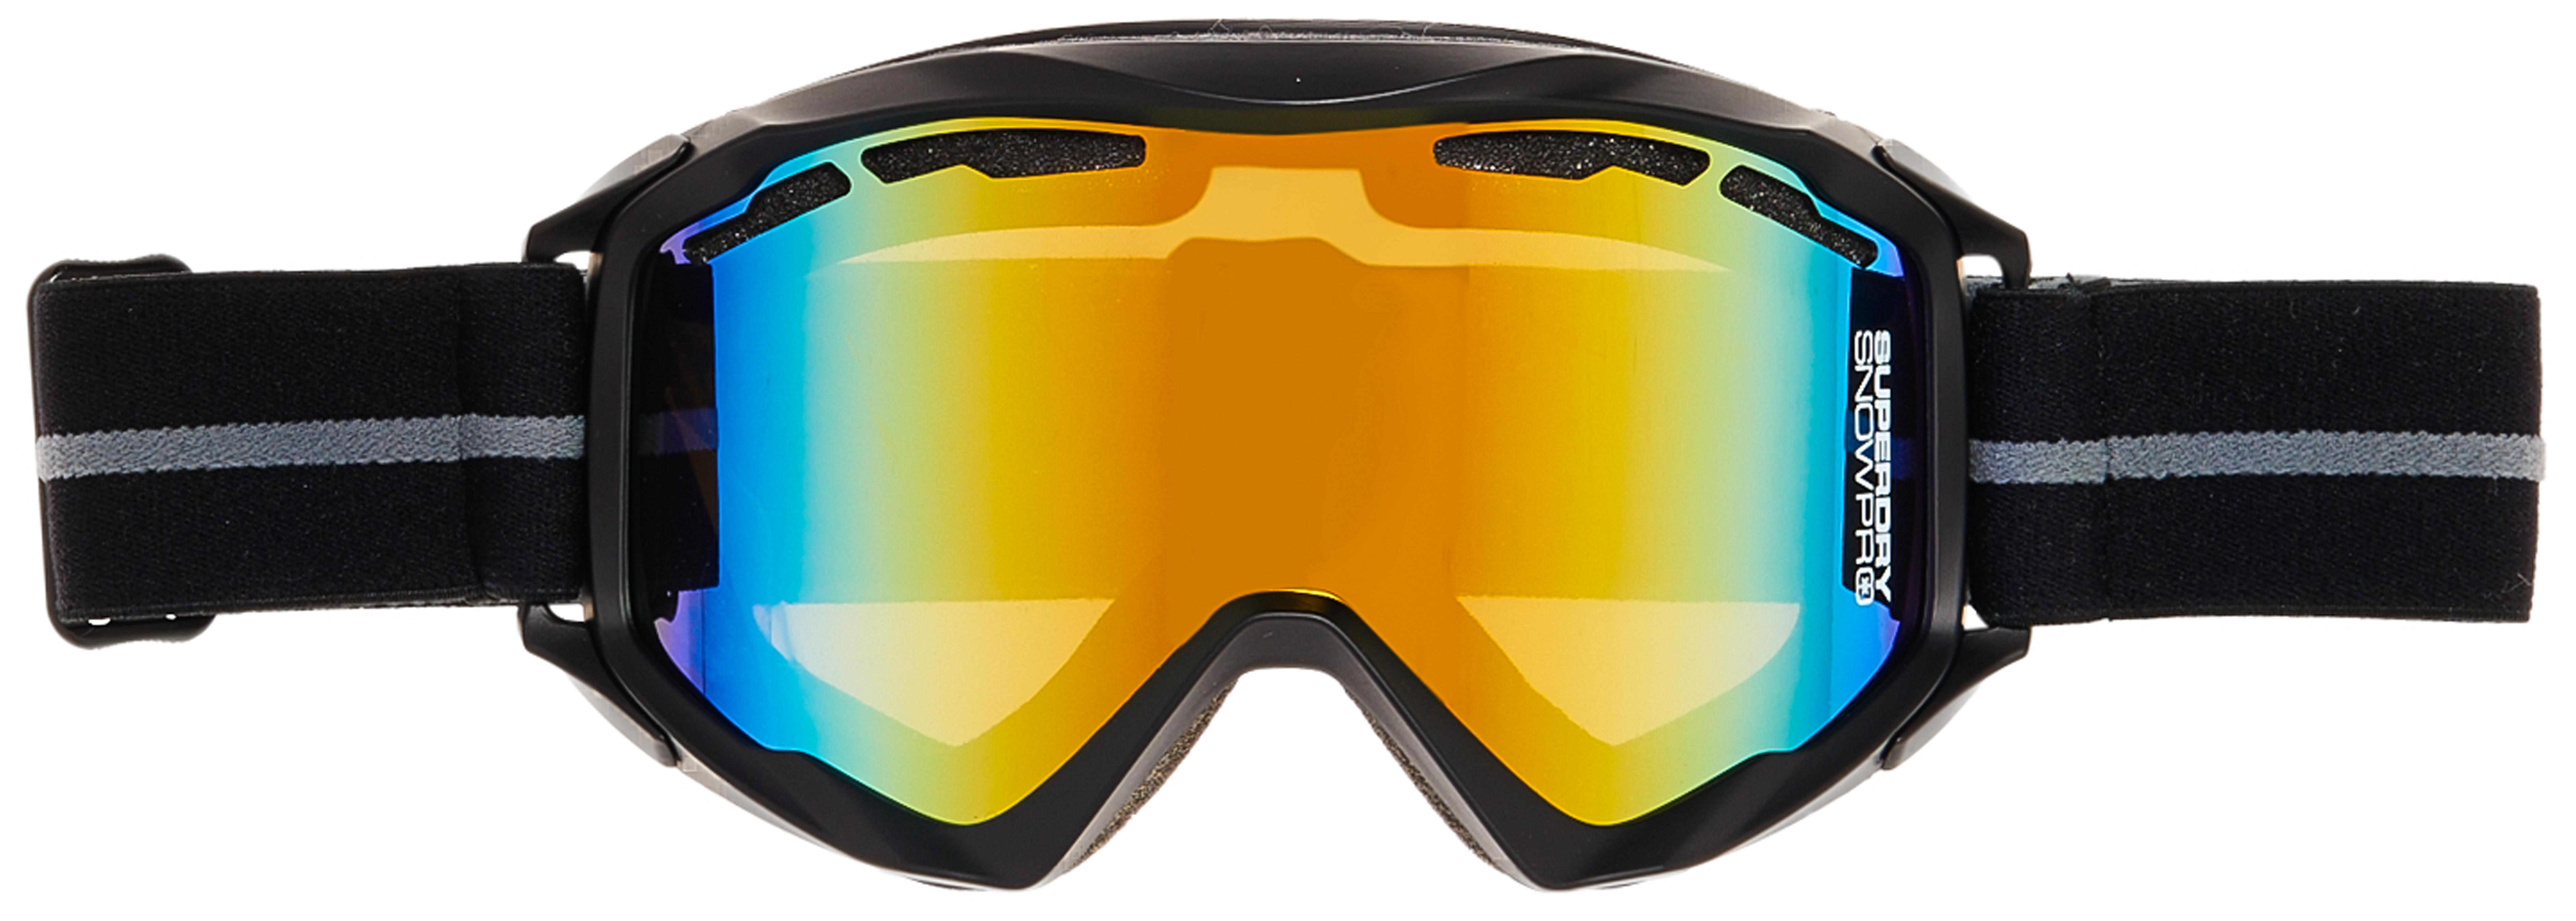 Superdry Men's Glacier Snow Goggles